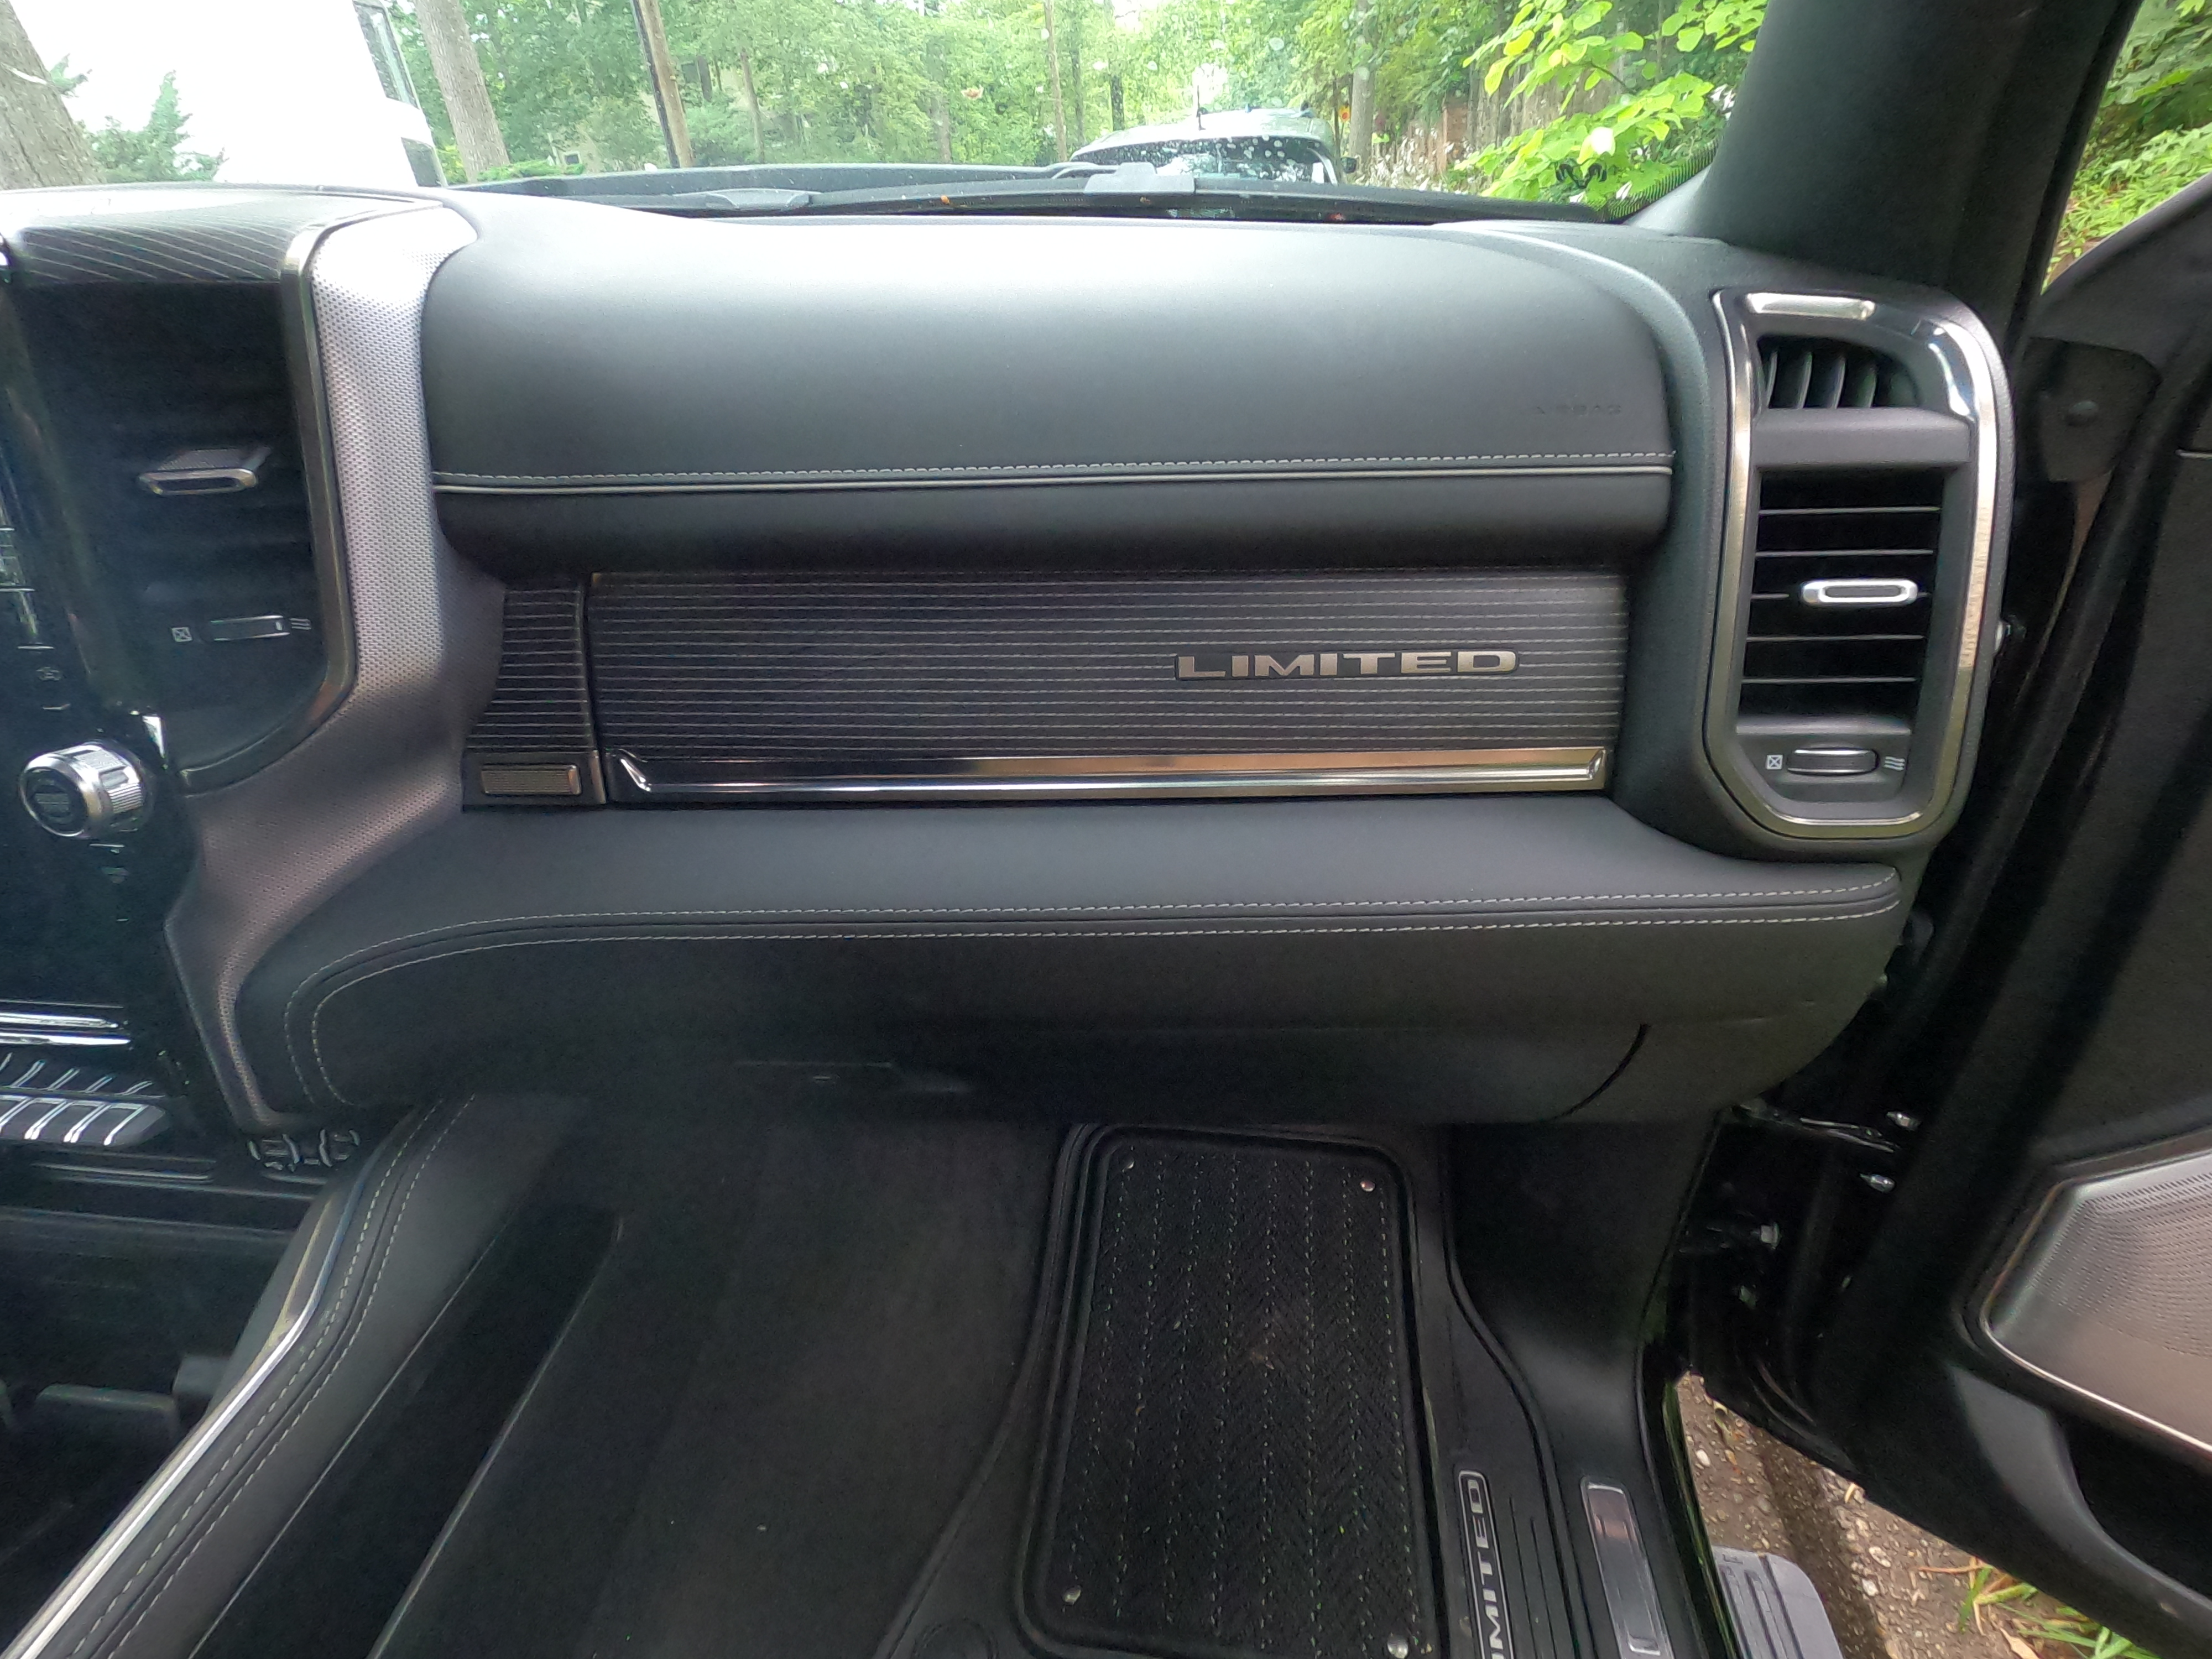 2020 Ram 1500 limited Right front Dash Pad